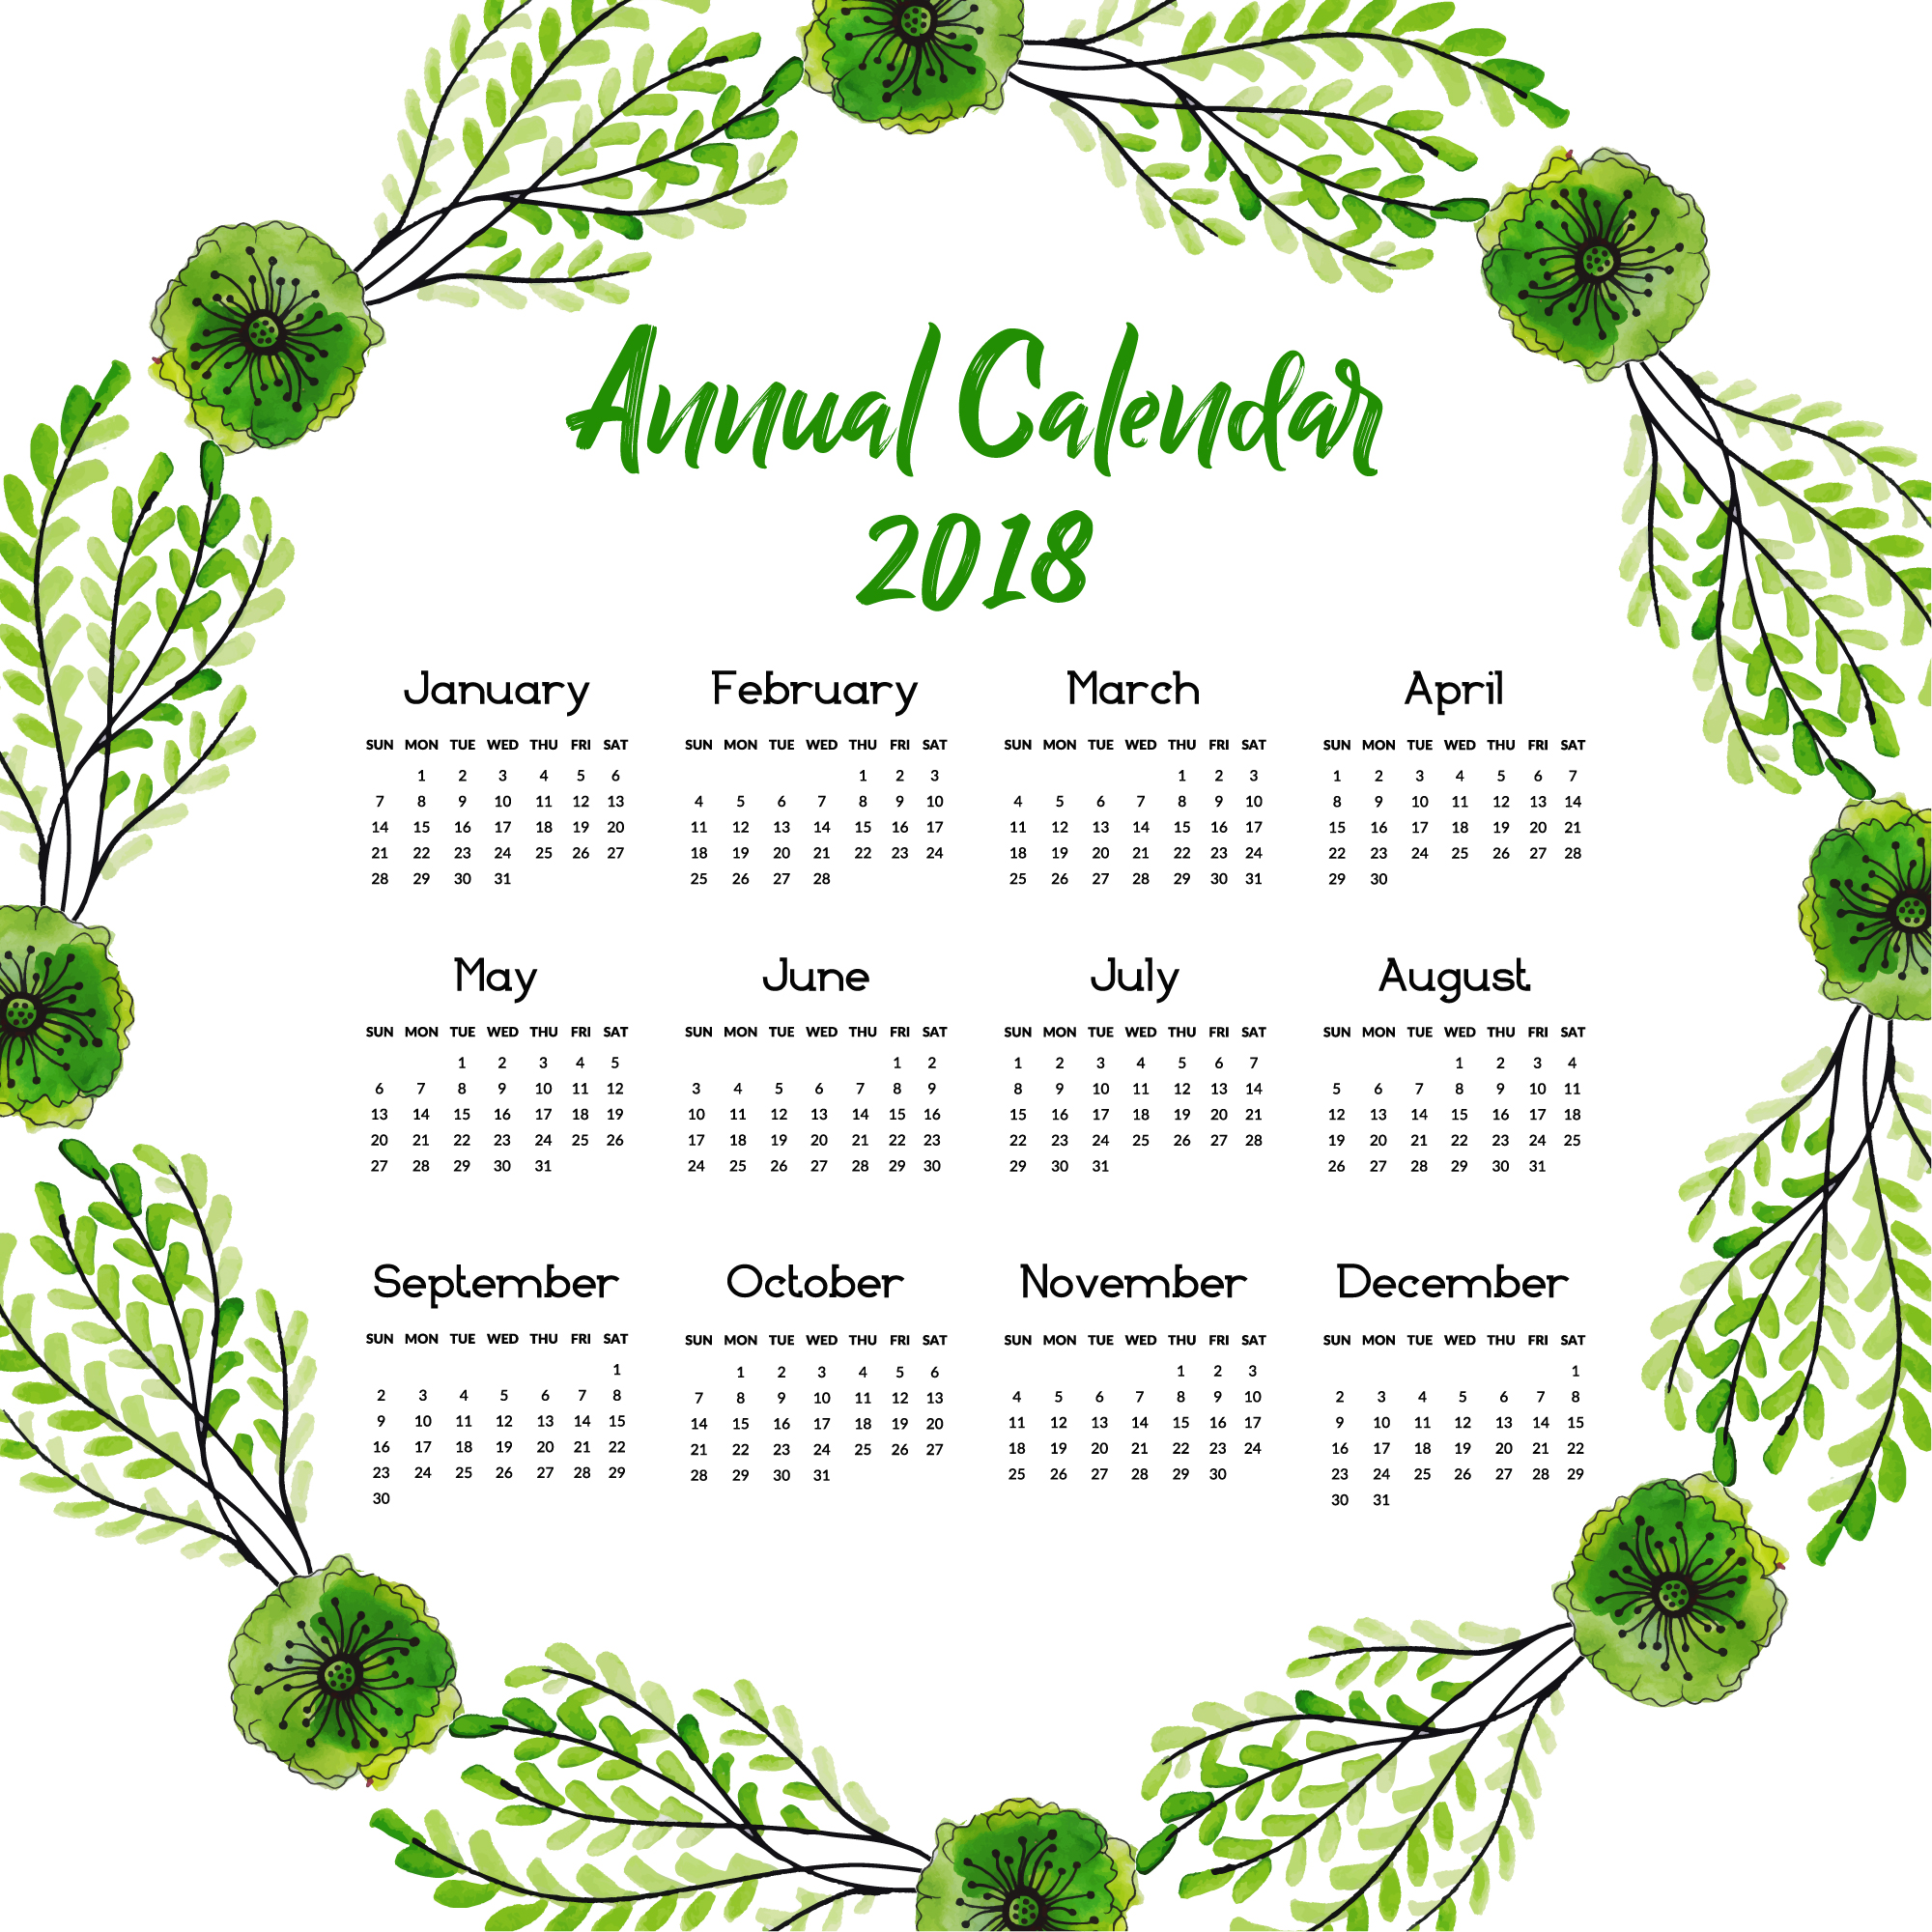 Calendar 2018 with green leaves